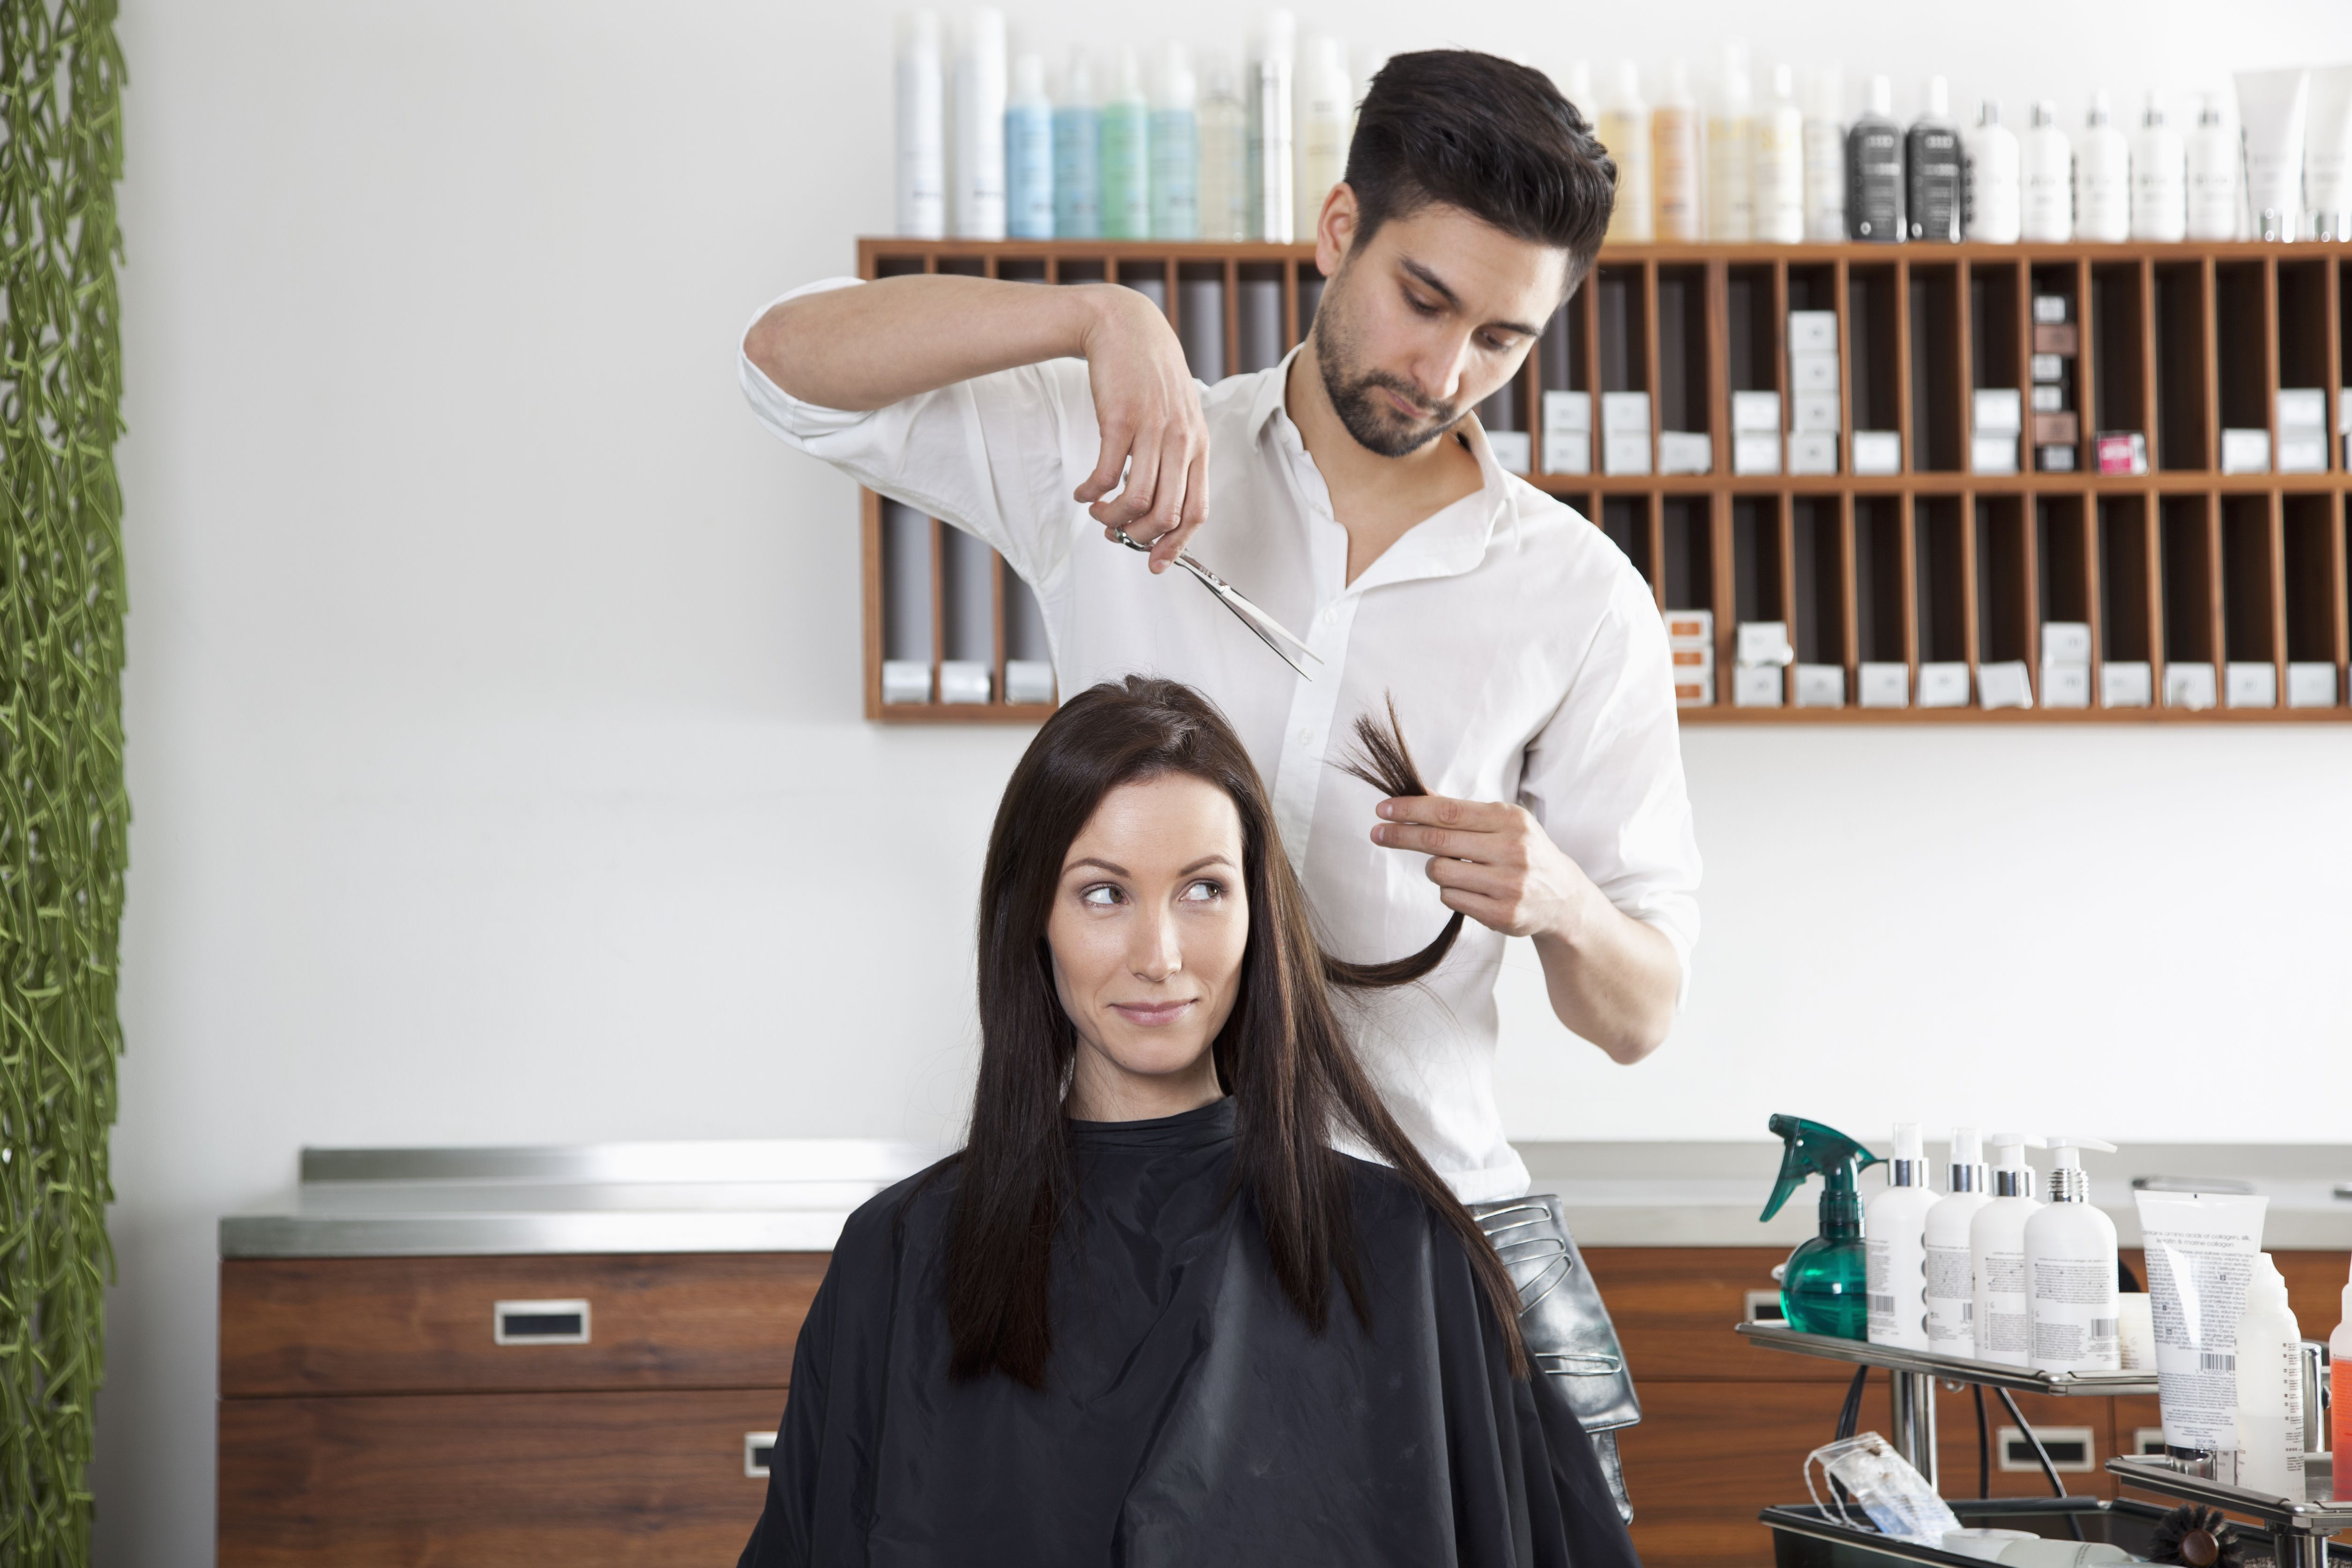 hair cutting style for ladies how to get the best haircut for your 8341 | a woman having her hair cut by a male hairdresser 116780639 588e5ce05f9b5874ee44eaa2